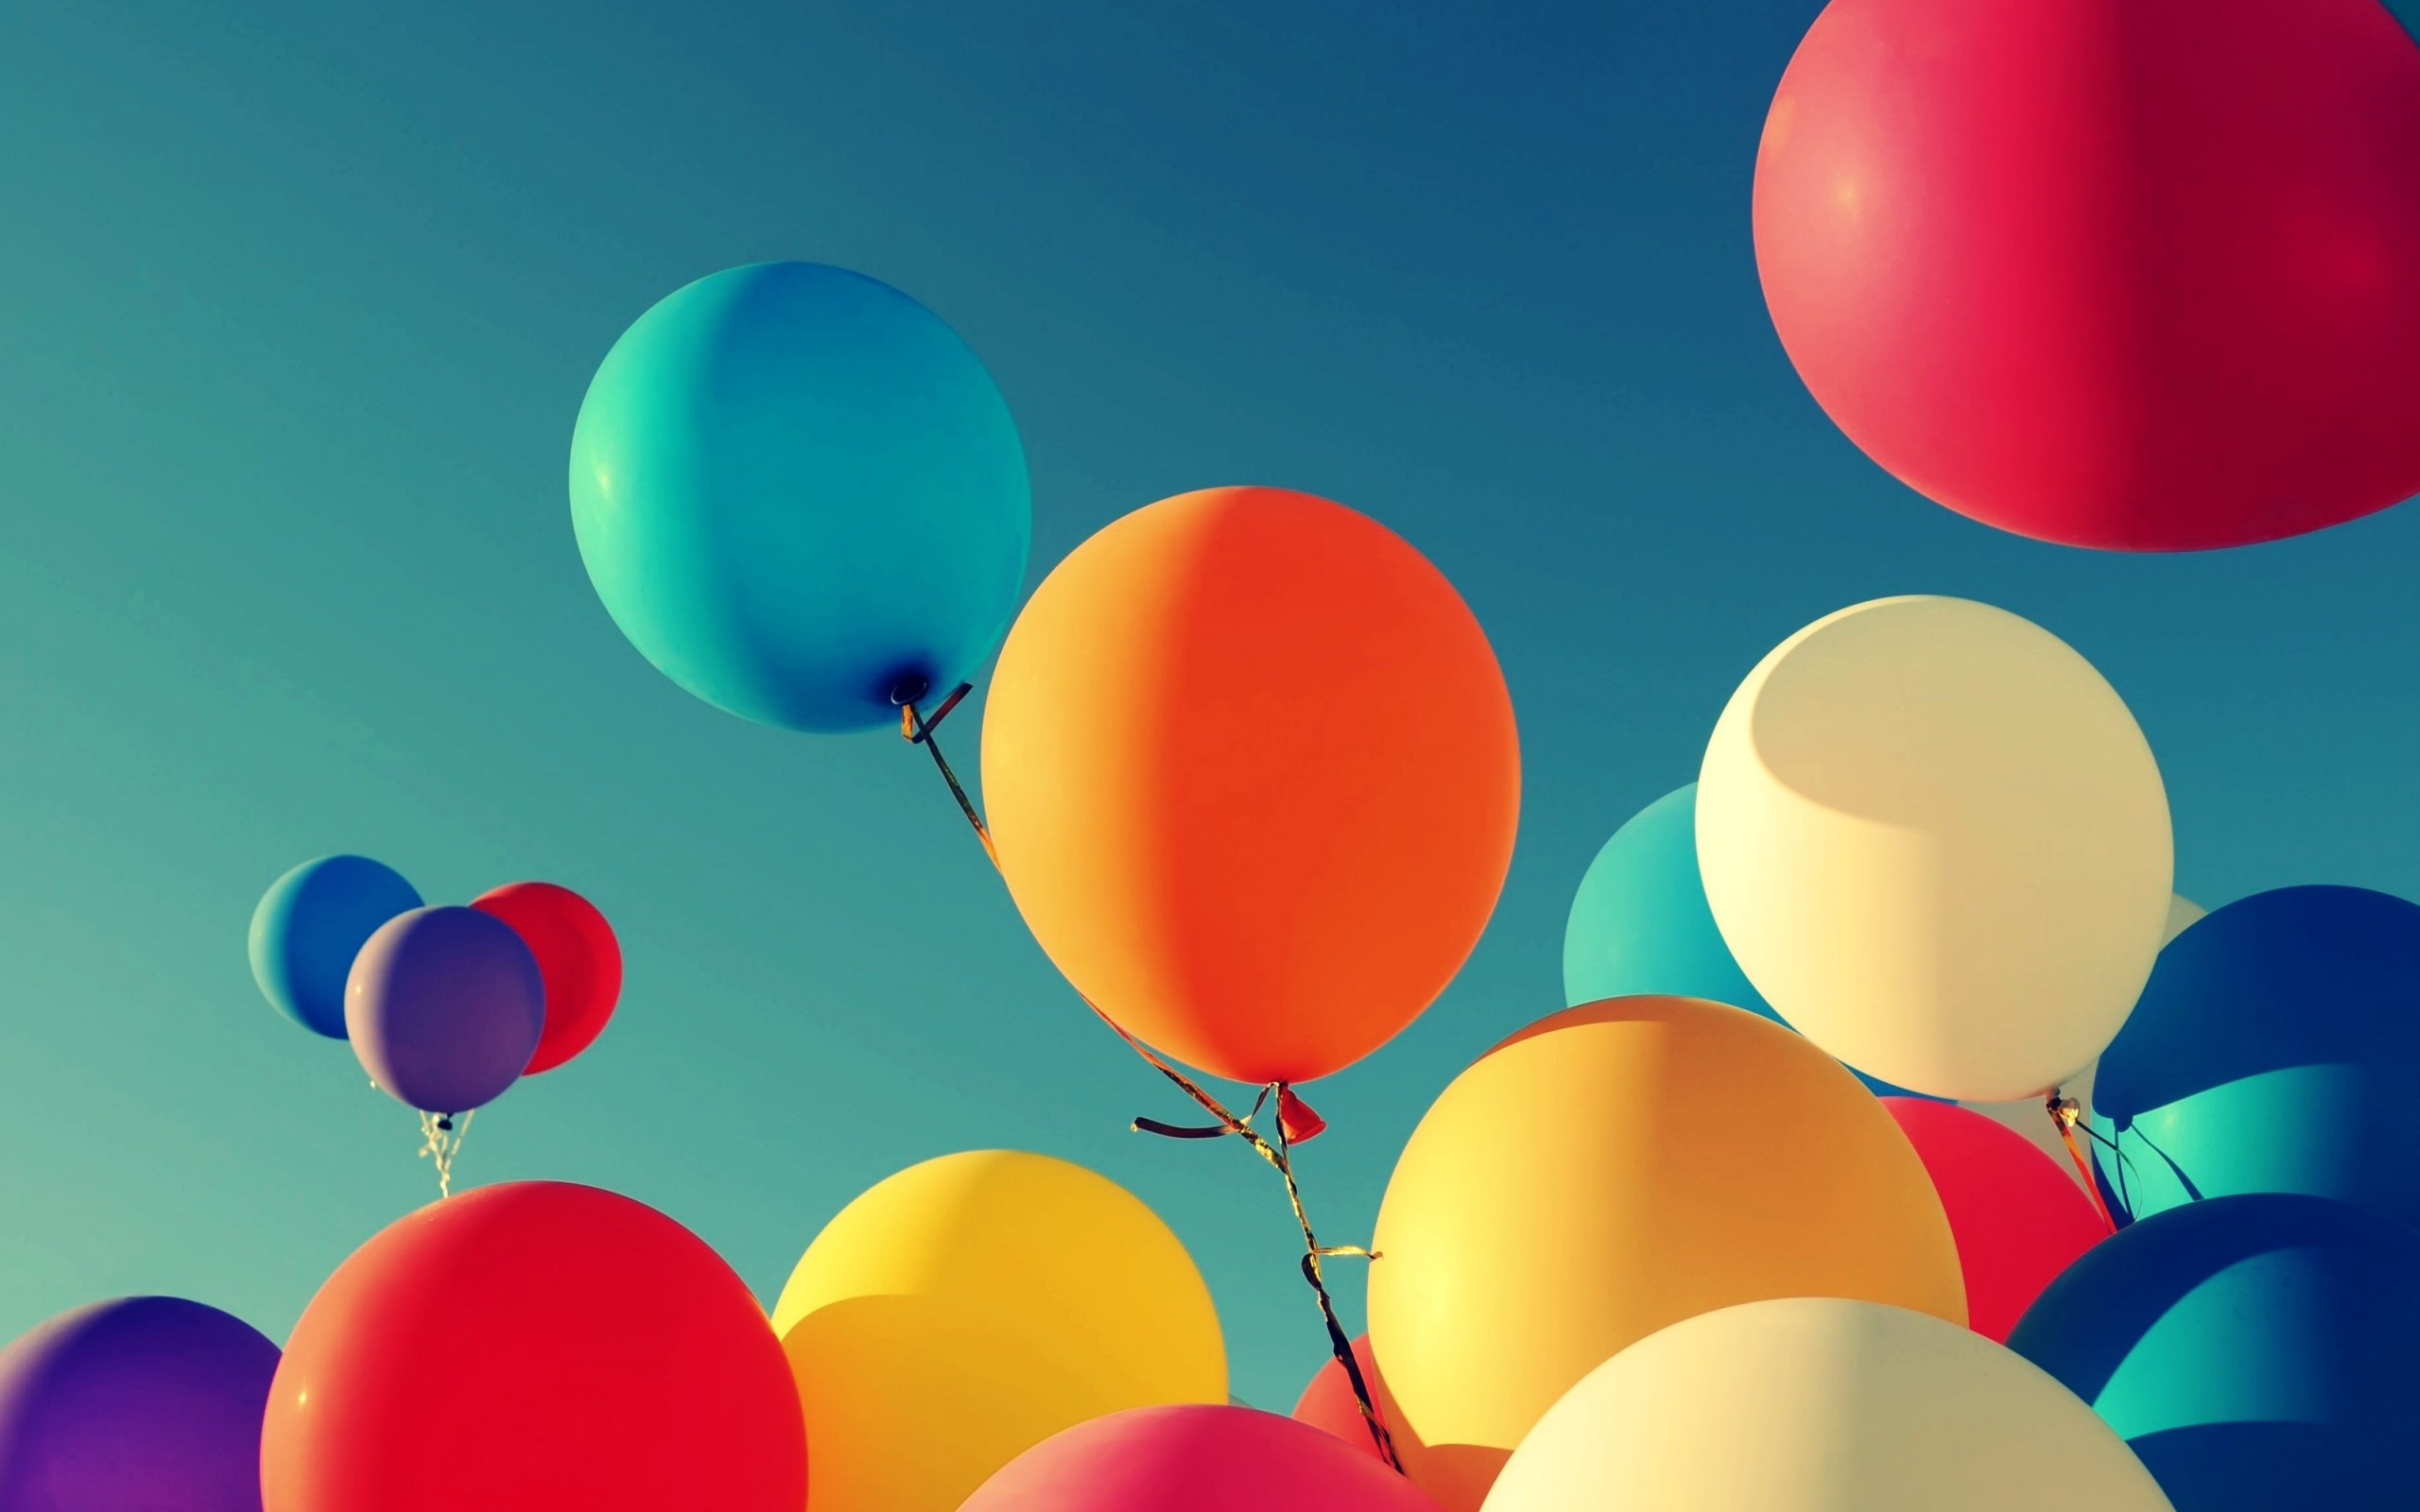 Colorful-Balloon-Wallpaper